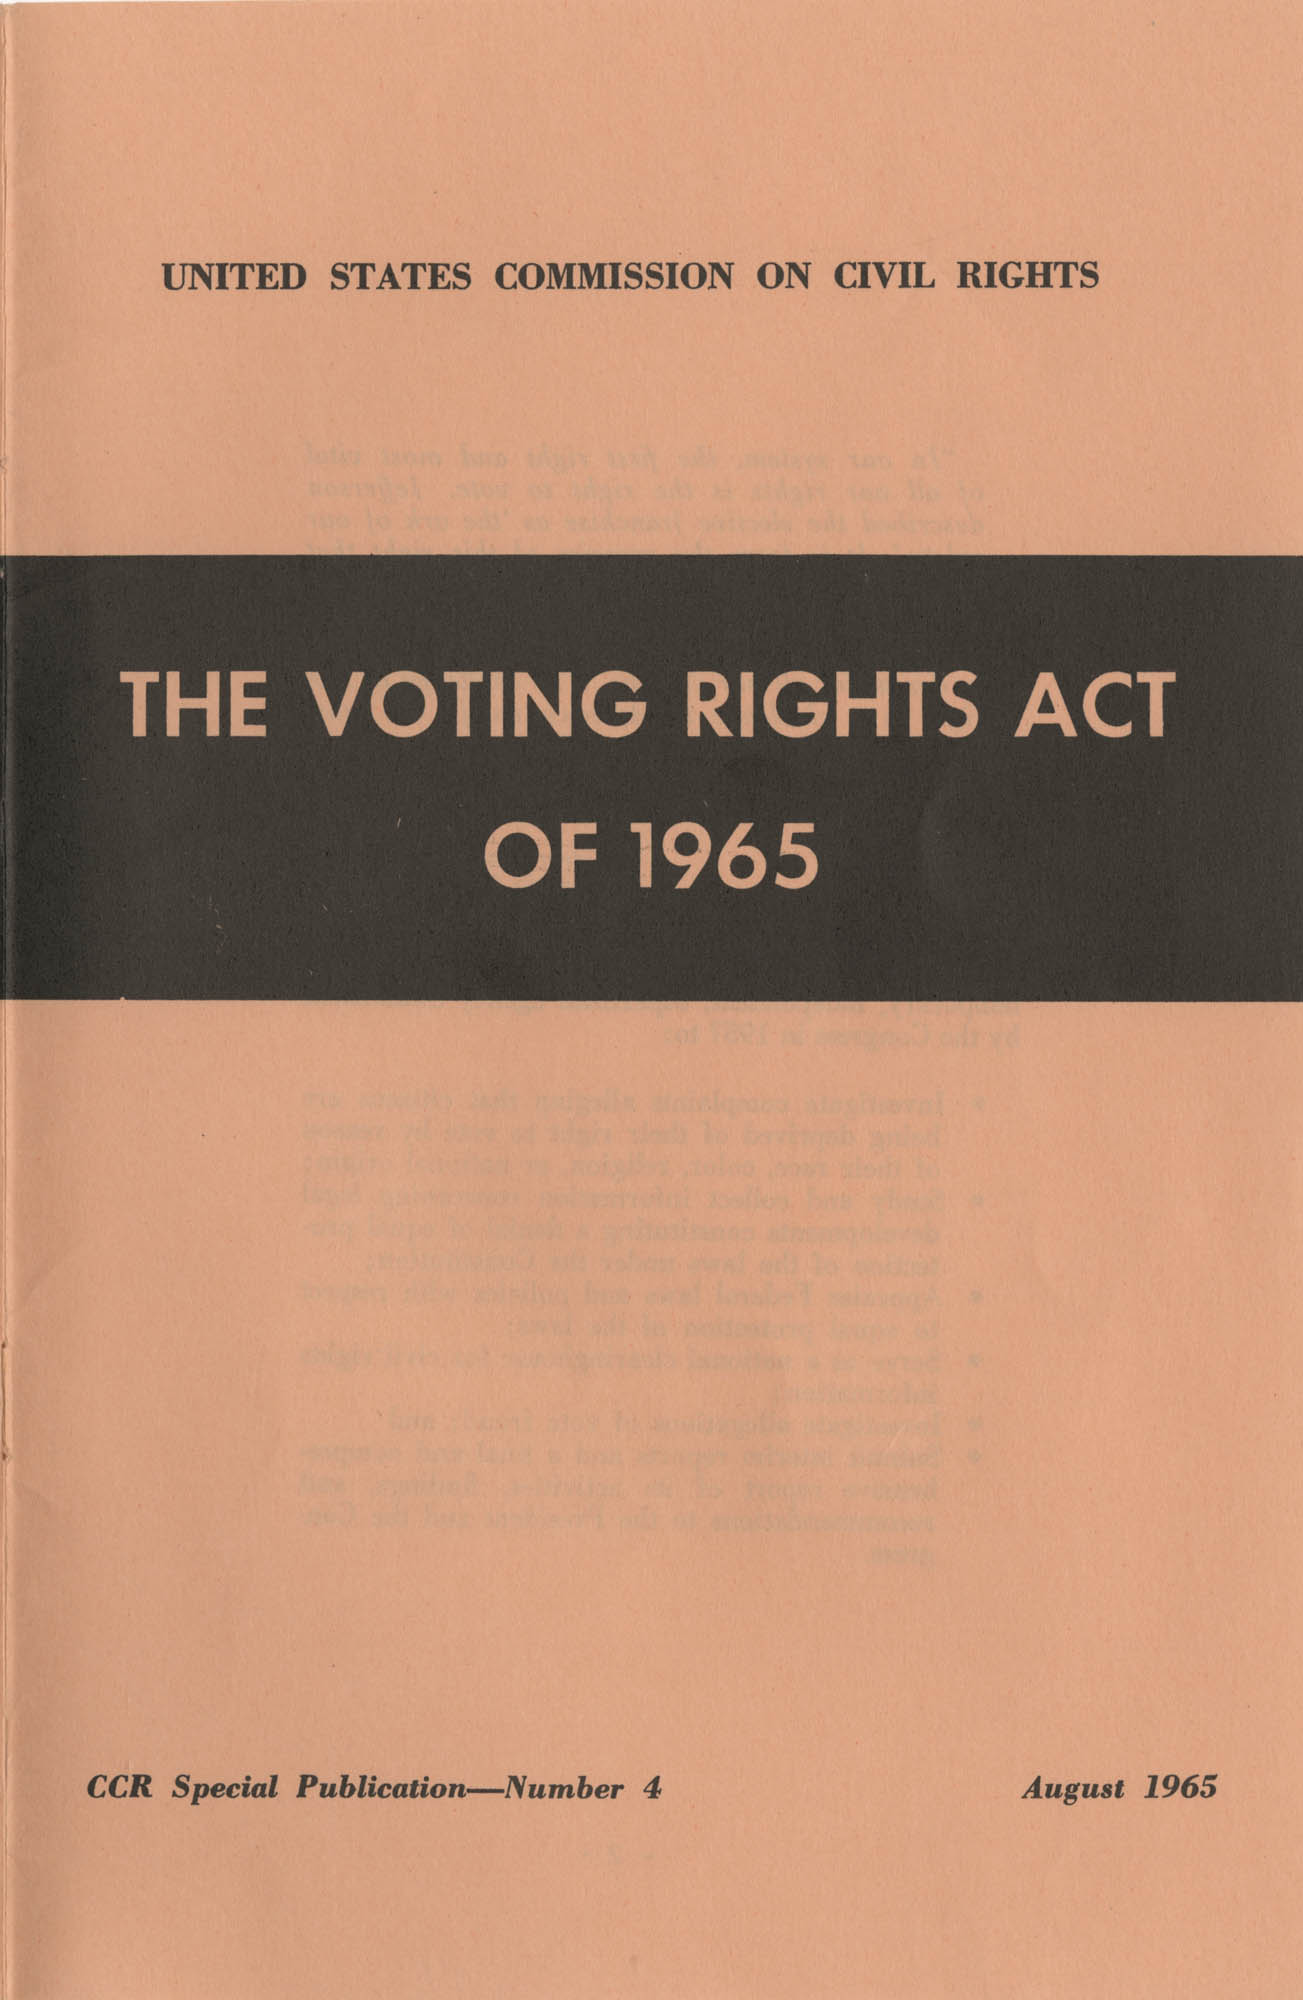 The Voting Rights Act of 1965, Front Cover